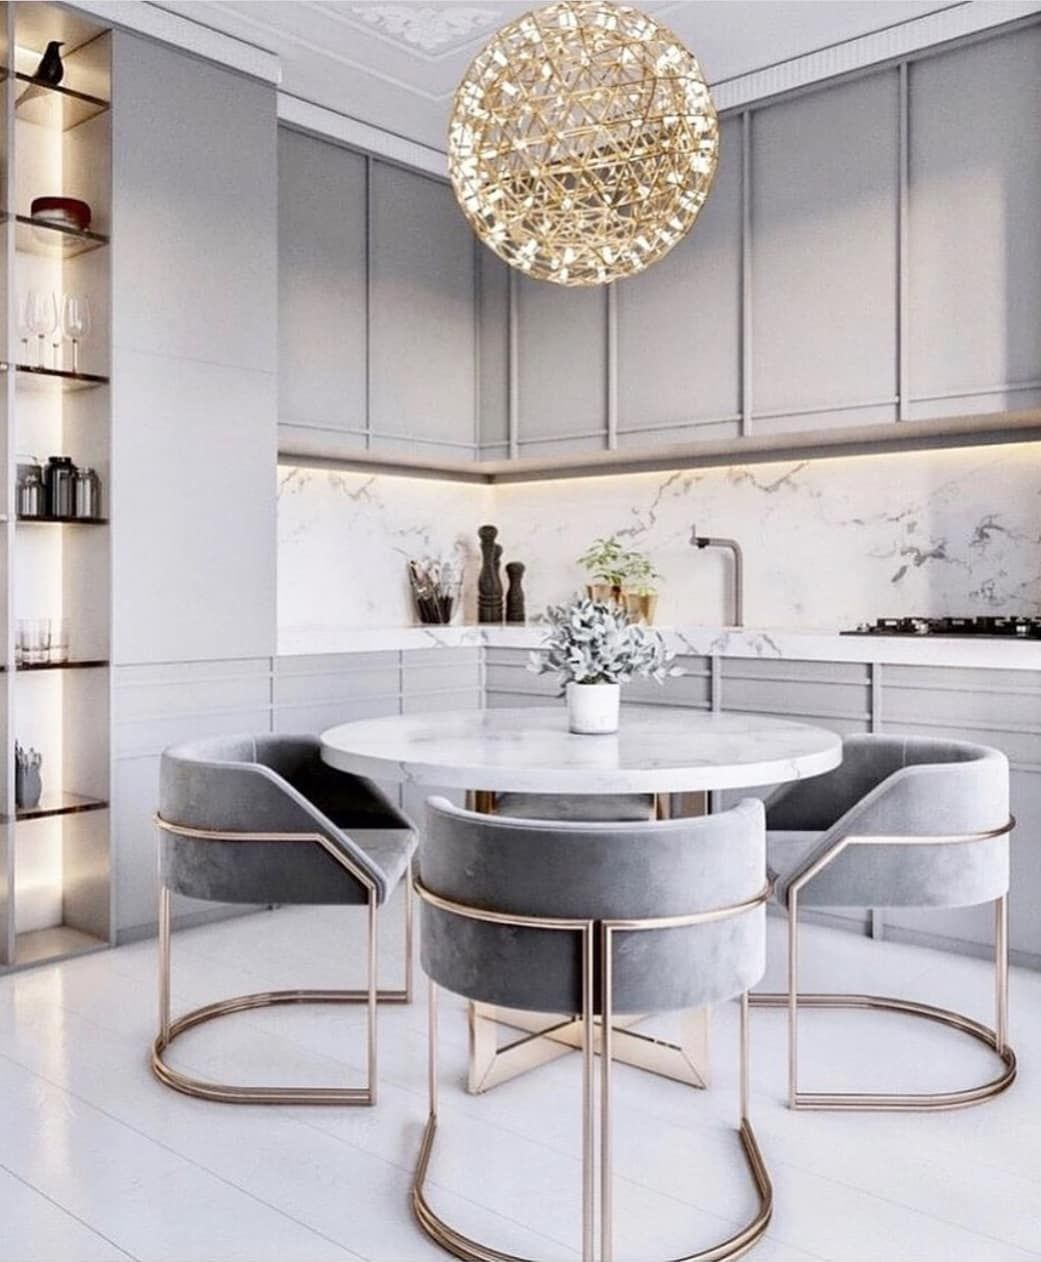 Outstanding Transitional Dining Room Suitable For Any Home: Small But Pretty , Comfortable Chic #apartmentdecor